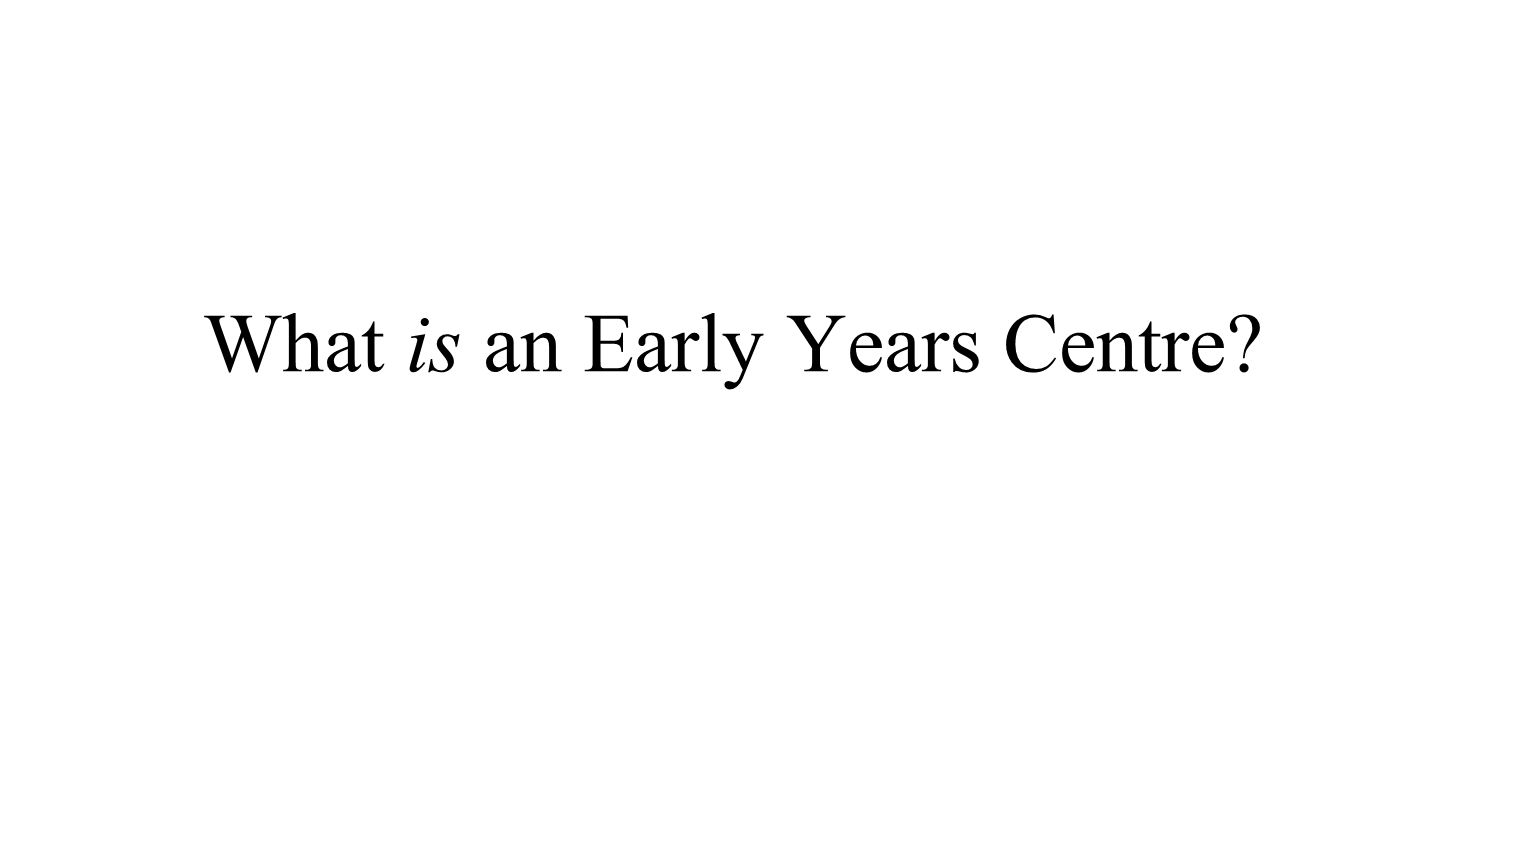 What is an Early Years Centre